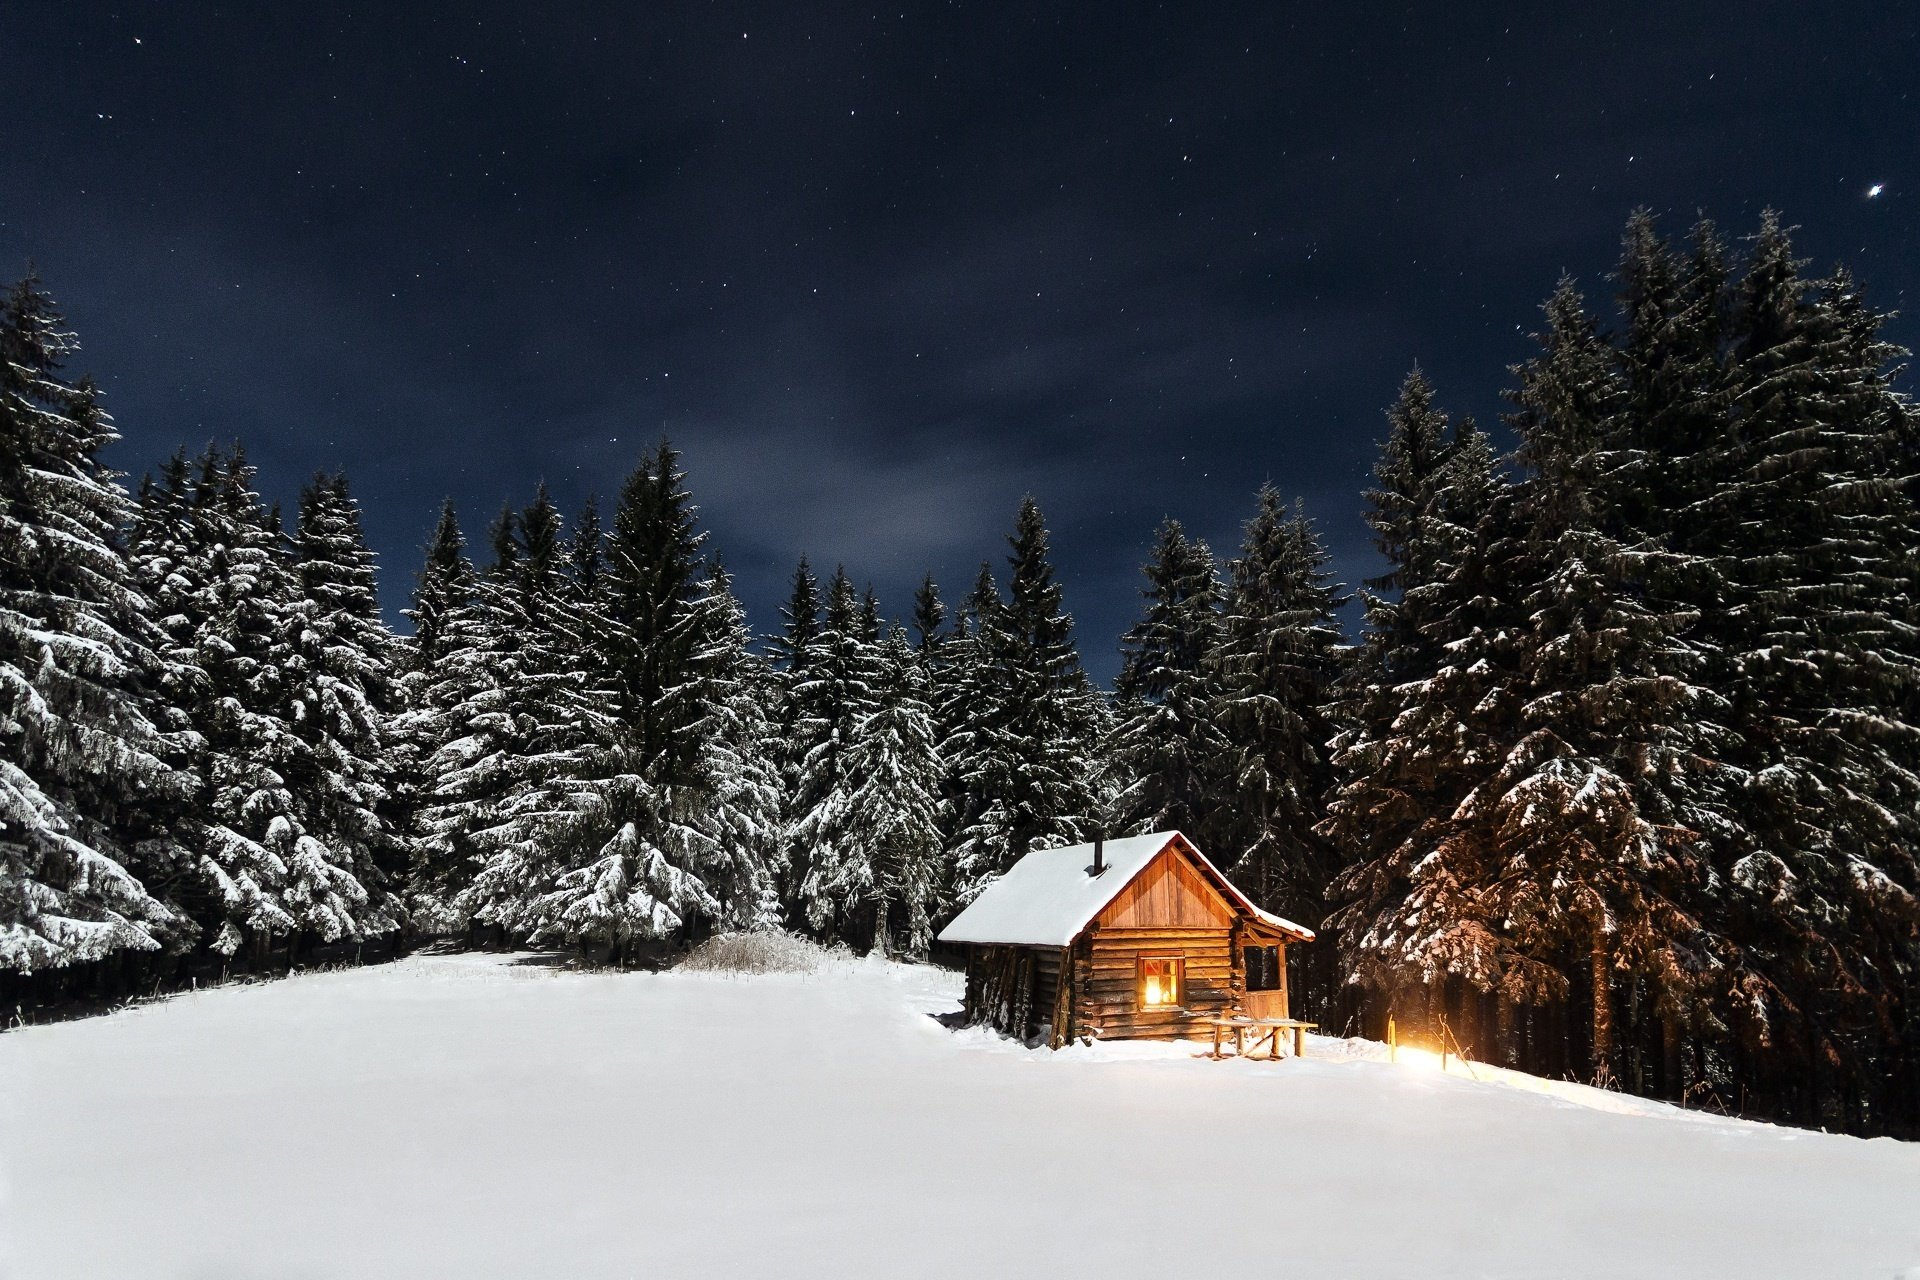 A log cabin at night in the wintertime, surrounded by snow